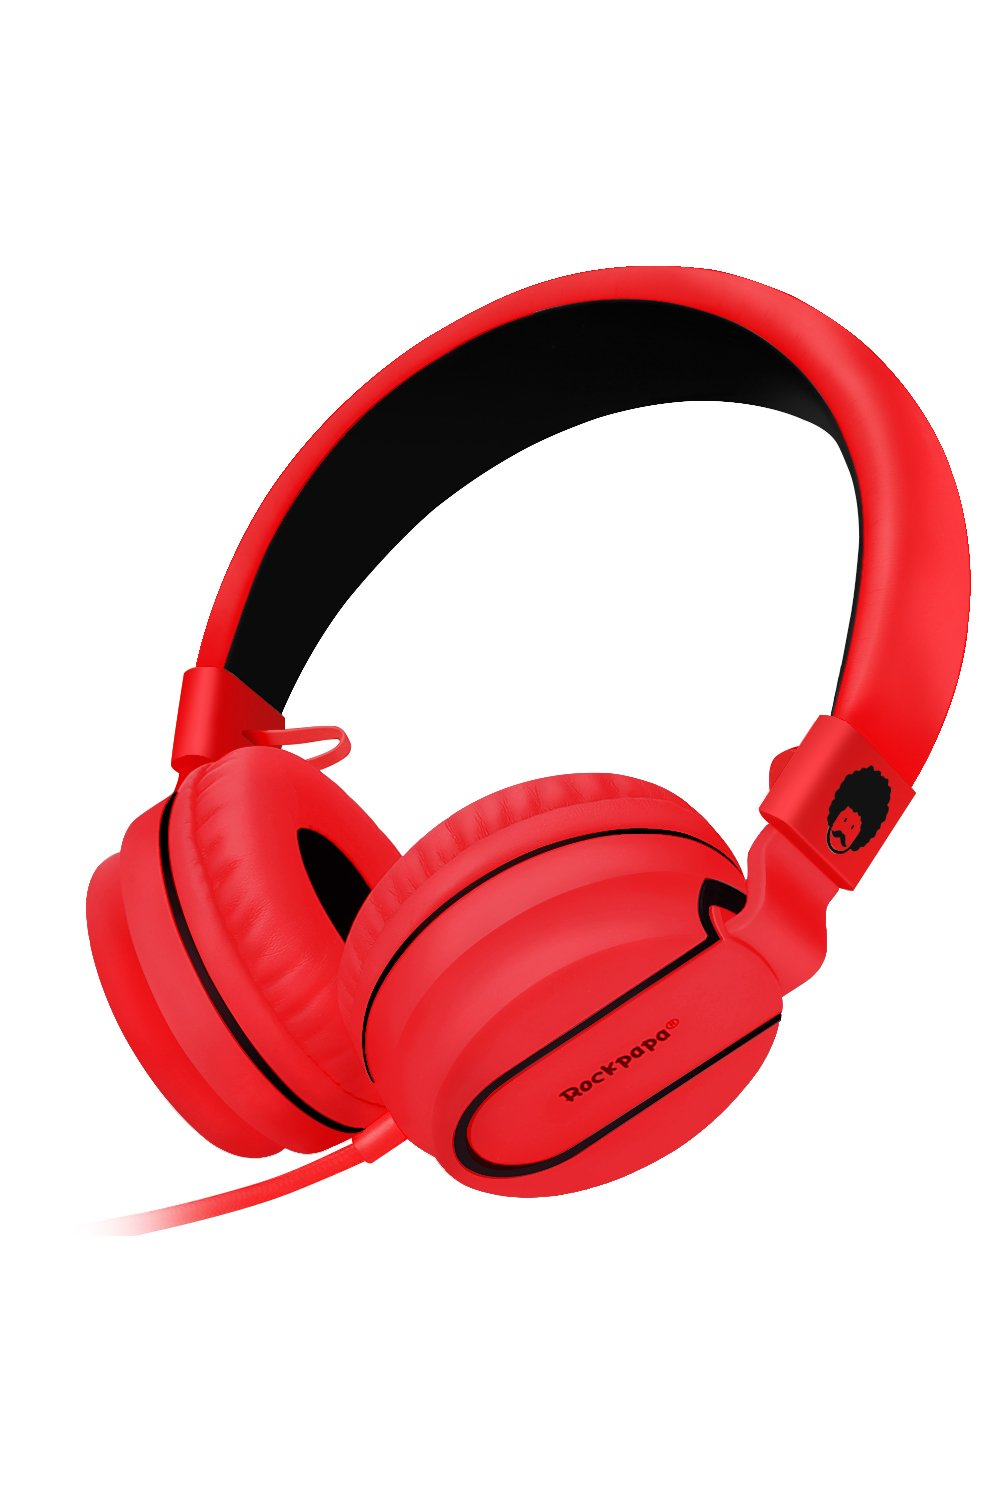 RockPapa Stereo Adjustable Foldable Headphones Lightweight Headband Headsets with Microphone 3.5mm for Cellphones Smartphones iPhone Tablets Laptop Computer Mp3/4 DVD (Black/Red)